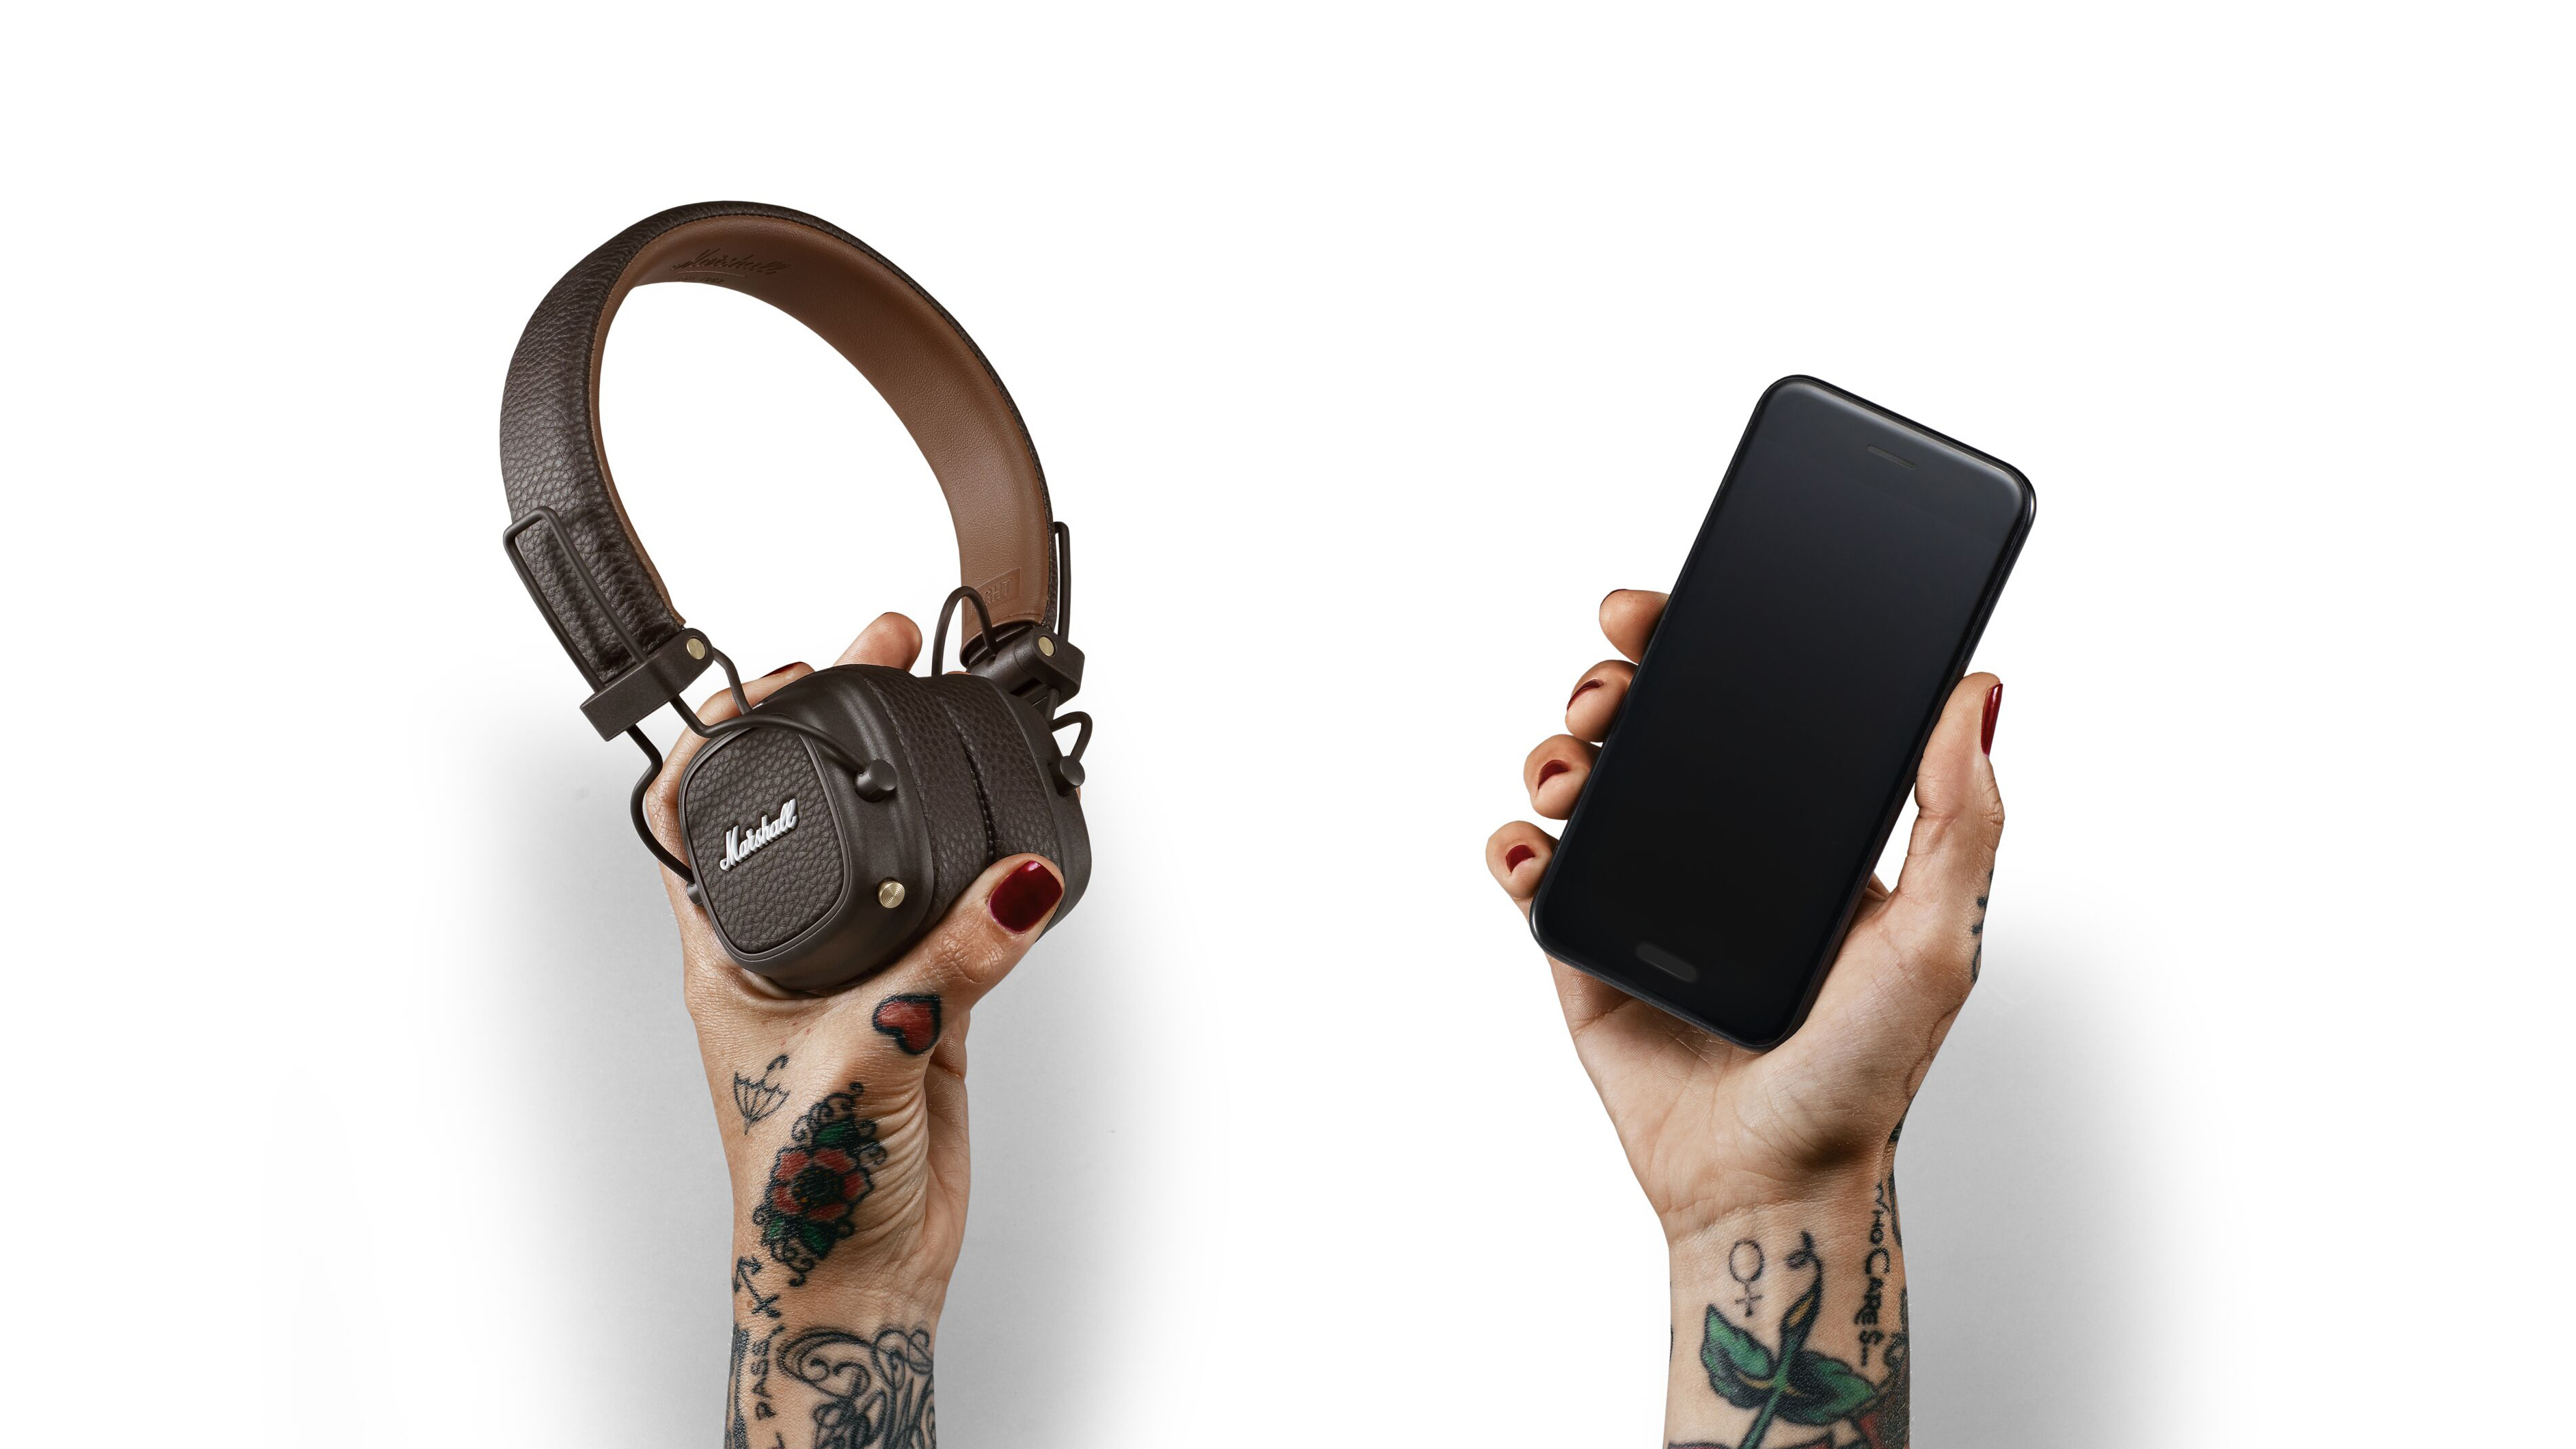 The Best Phones For Music 2020 Great Sounding Smartphones For Every Budget Louder